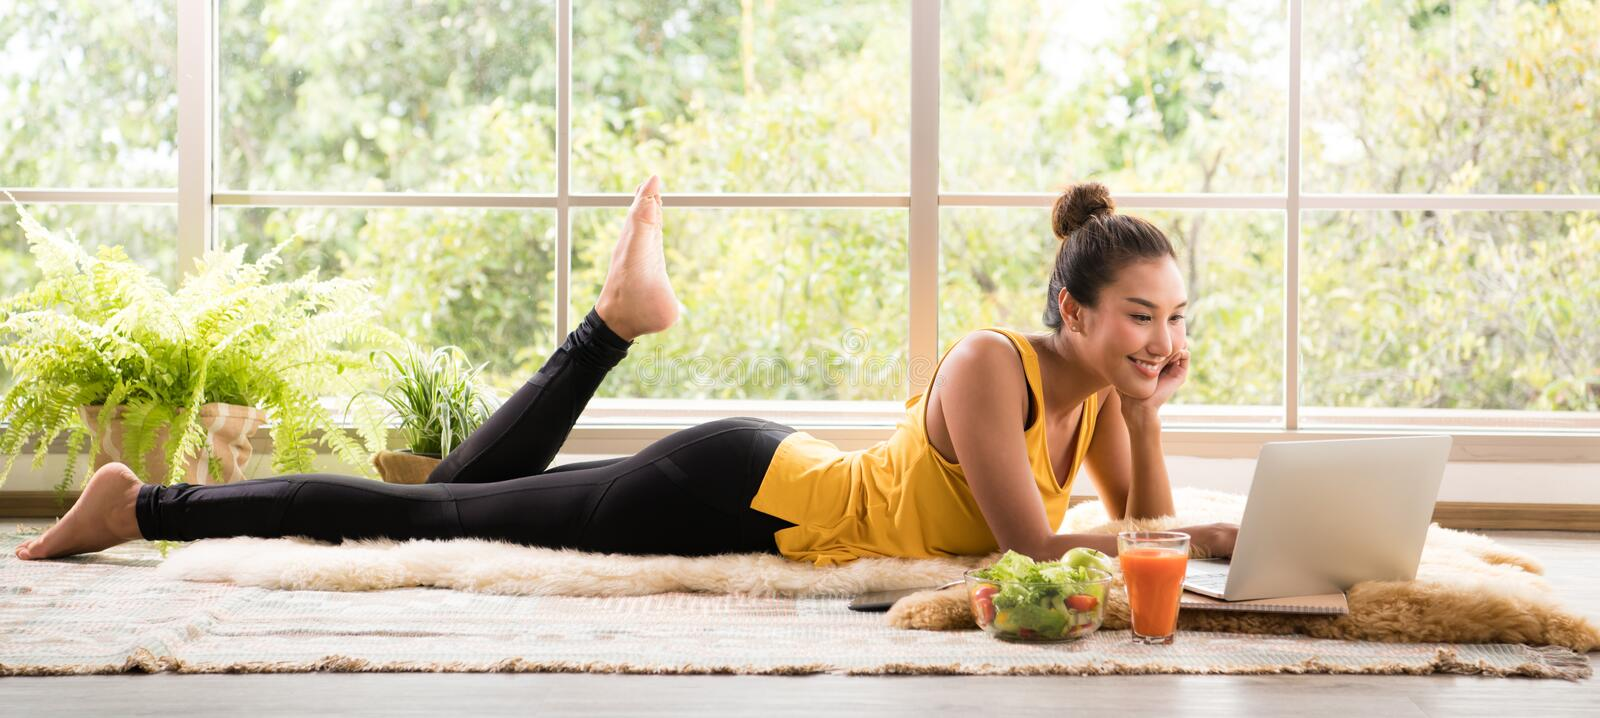 Healthy Asian woman lying on the floor eating salad and looking at laptop computer royalty free stock image